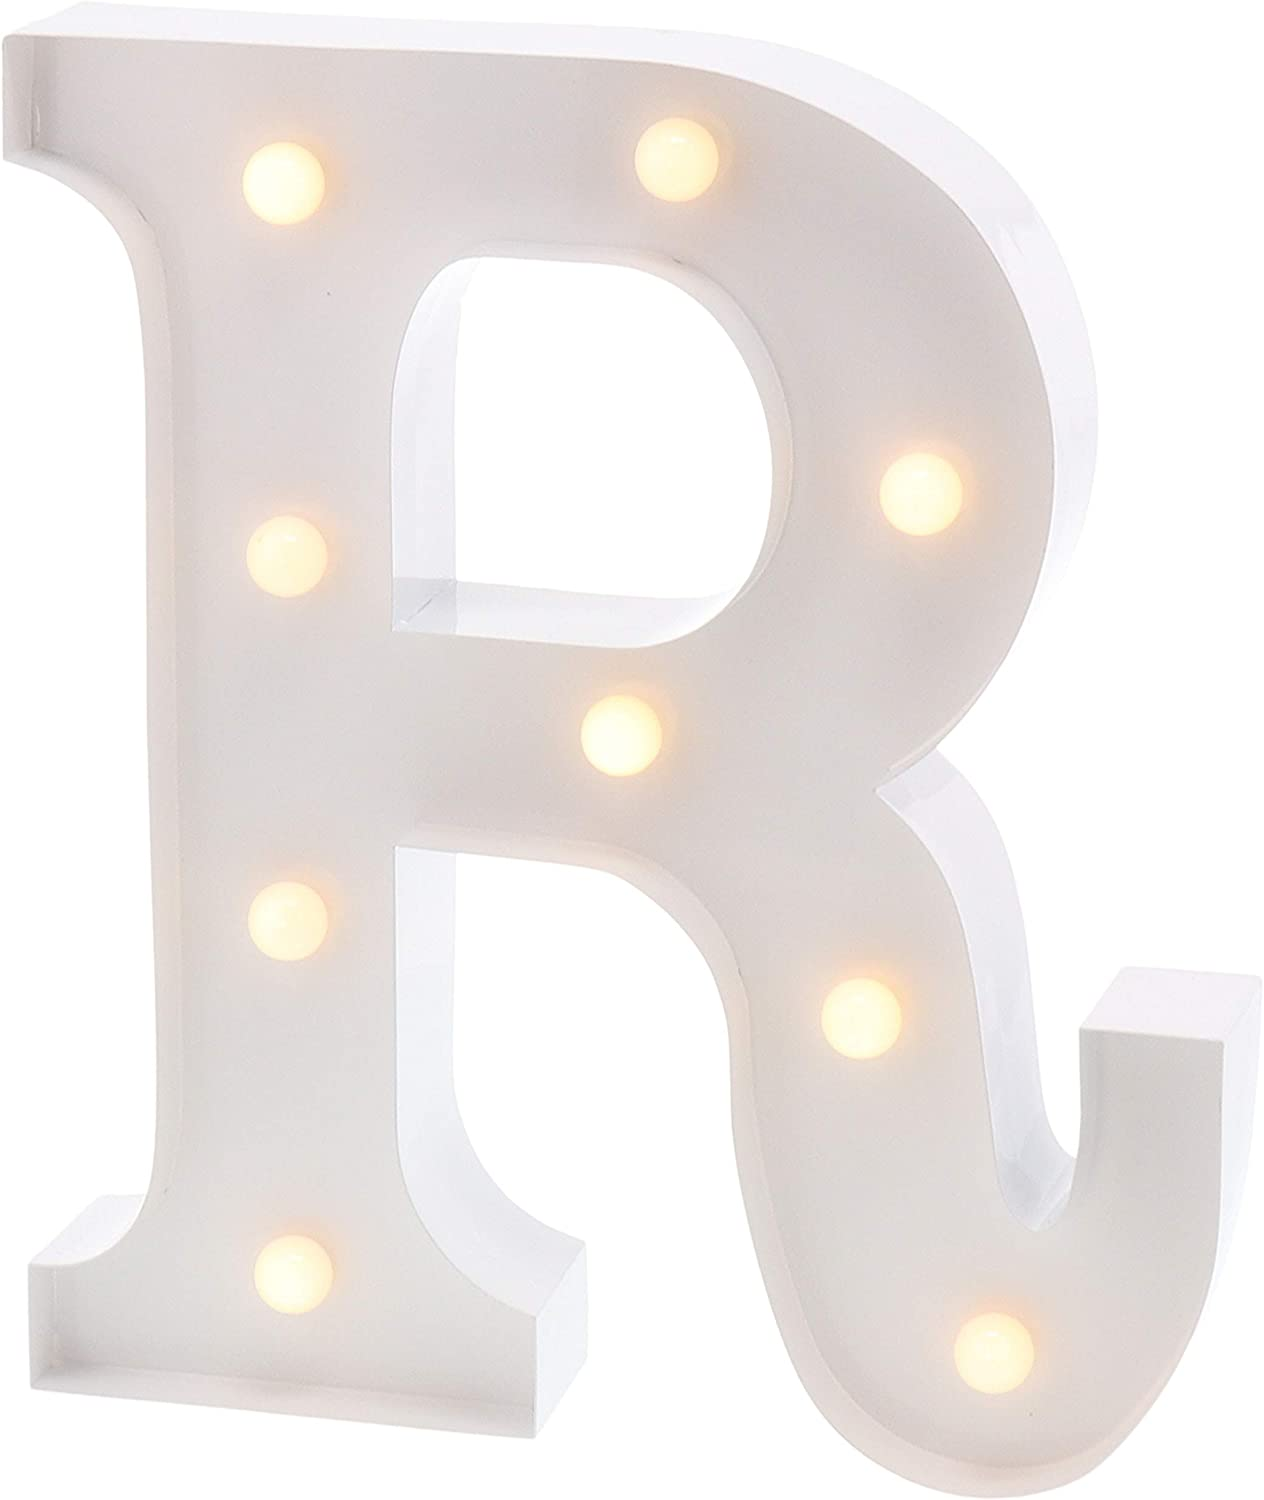 """Barnyard Designs Metal Marquee Letter R Light Up Wall Initial Wedding, Bar, Home and Nursery Letter Decoration 12"""" (White)"""